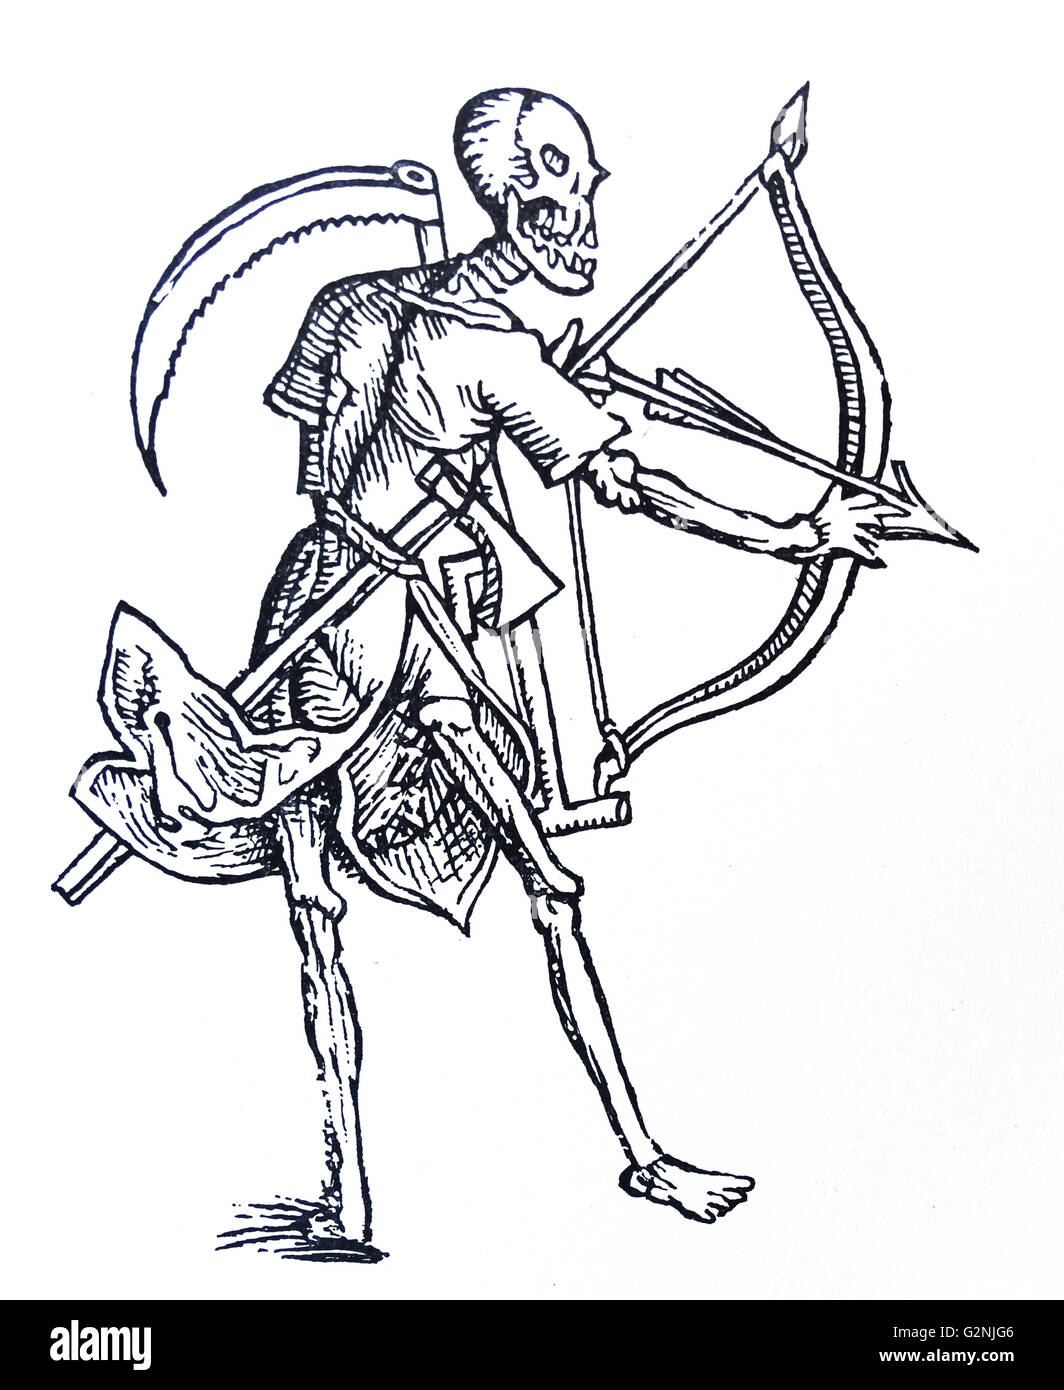 Mediaeval line drawing of death with a bow and scythe - Stock Image